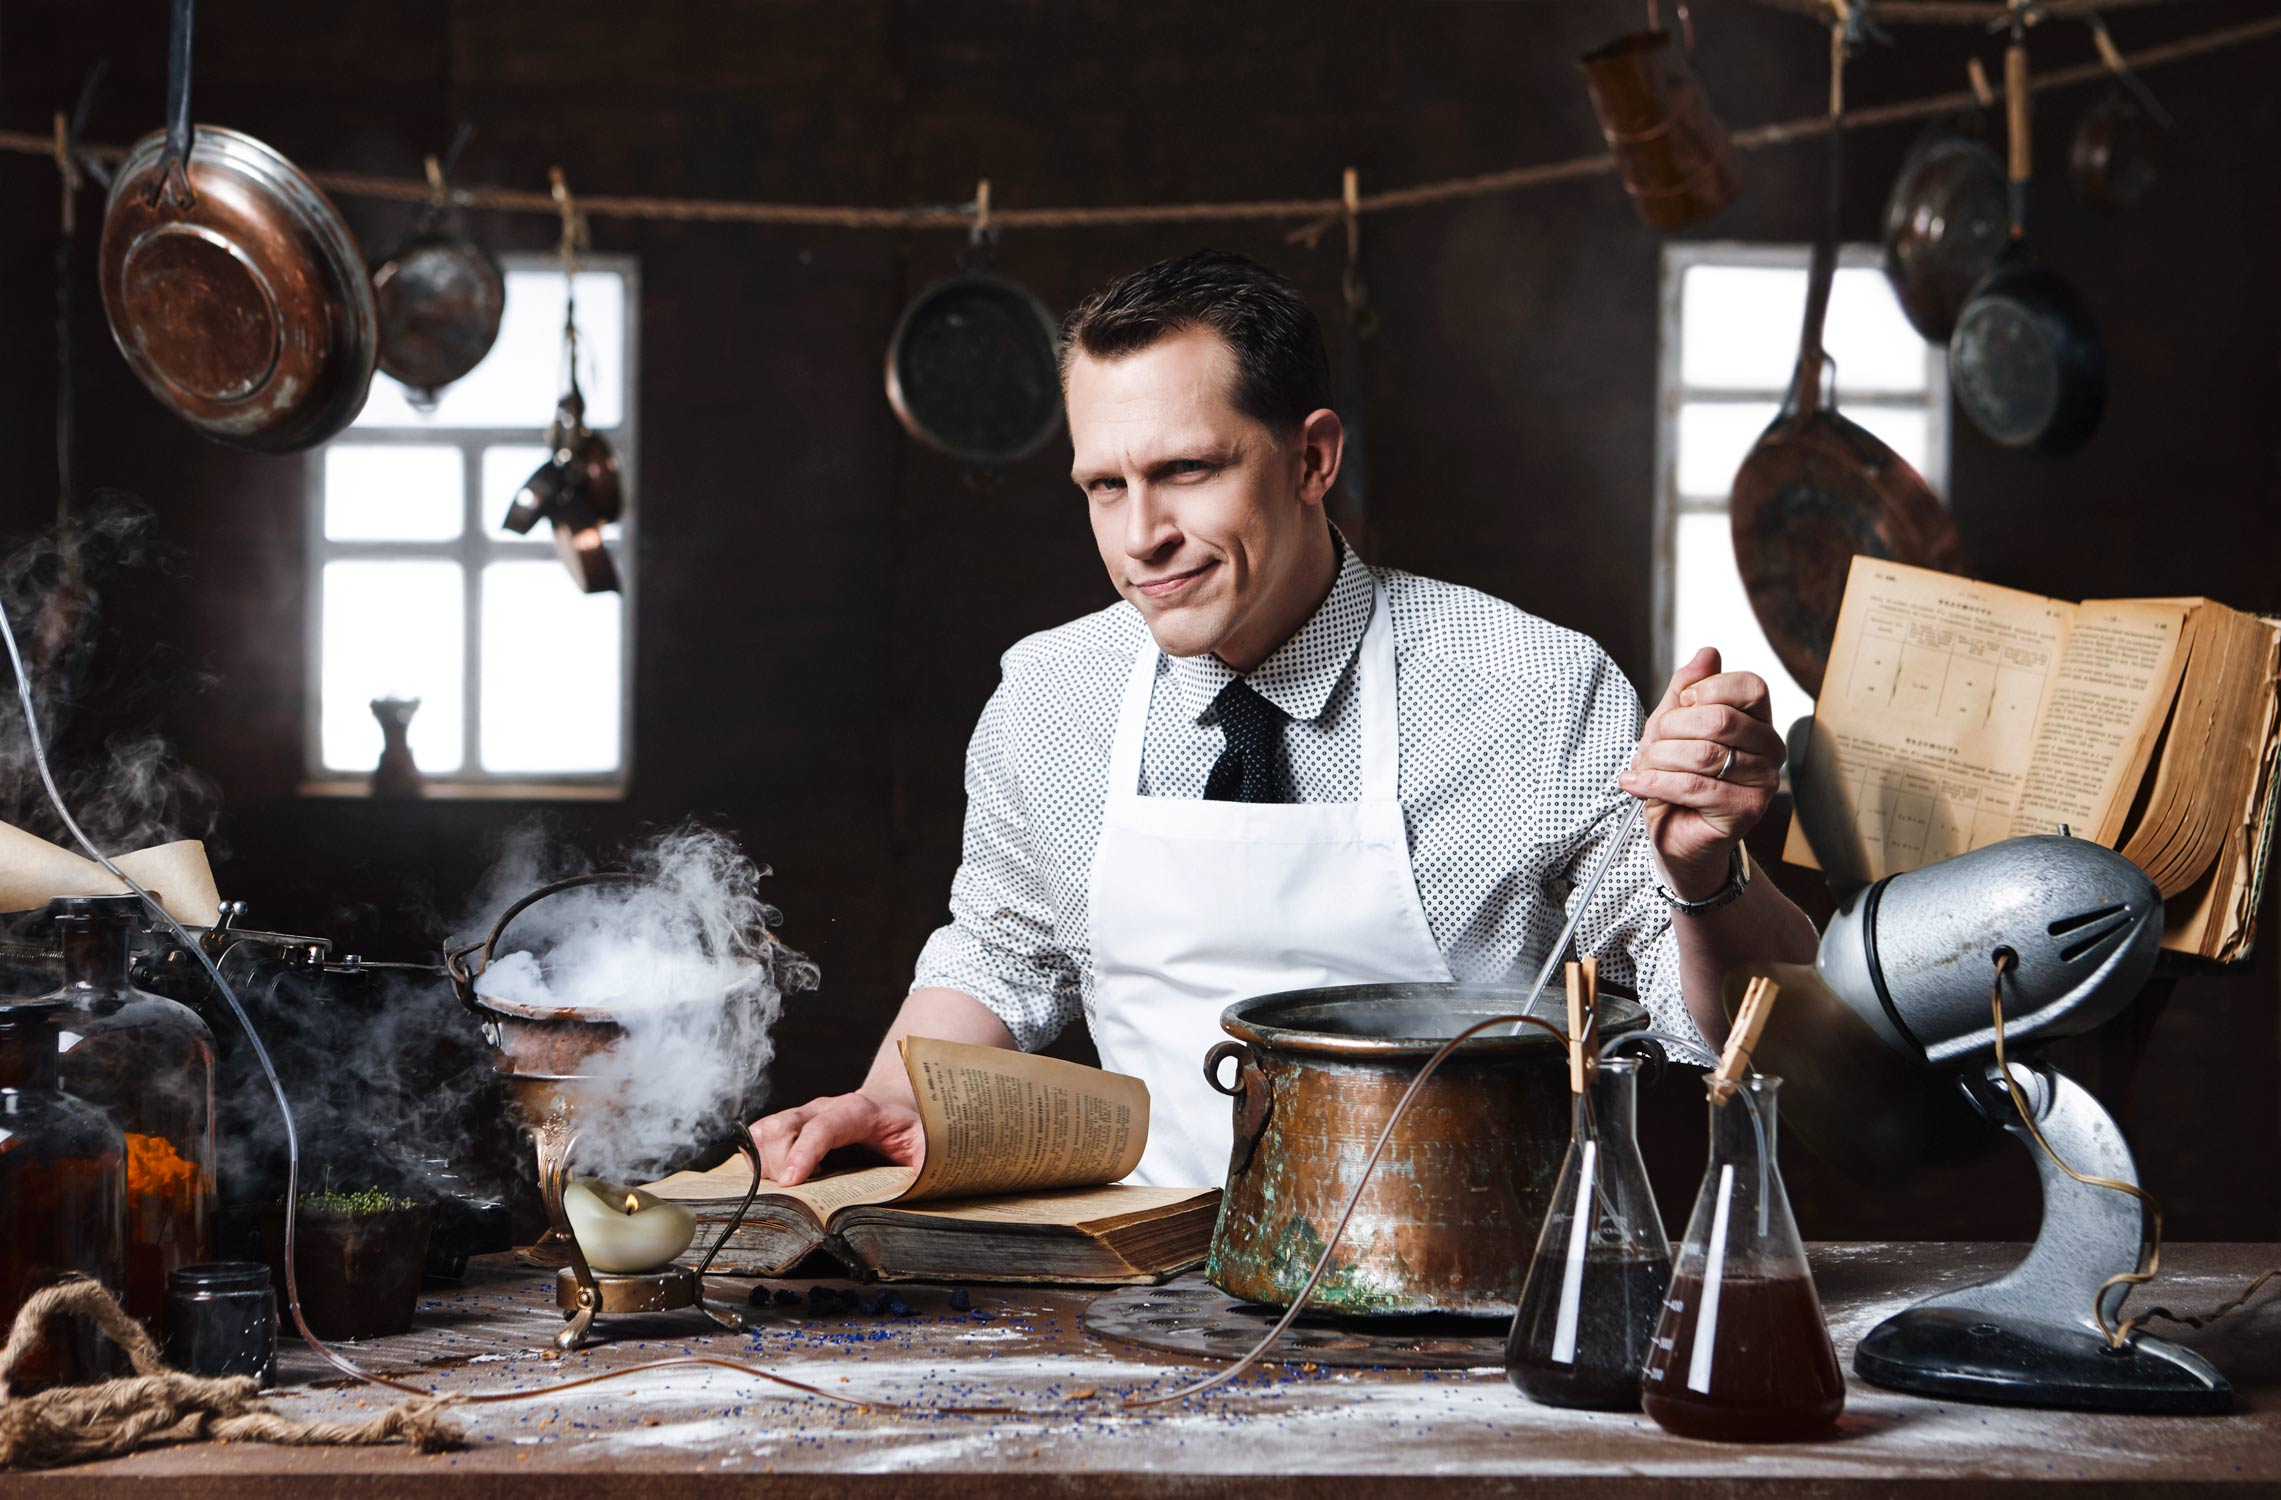 <p>Michael Laiskonis<br /> Pastry Chef<br /> Lithuania-USA<br /> 2014</p>